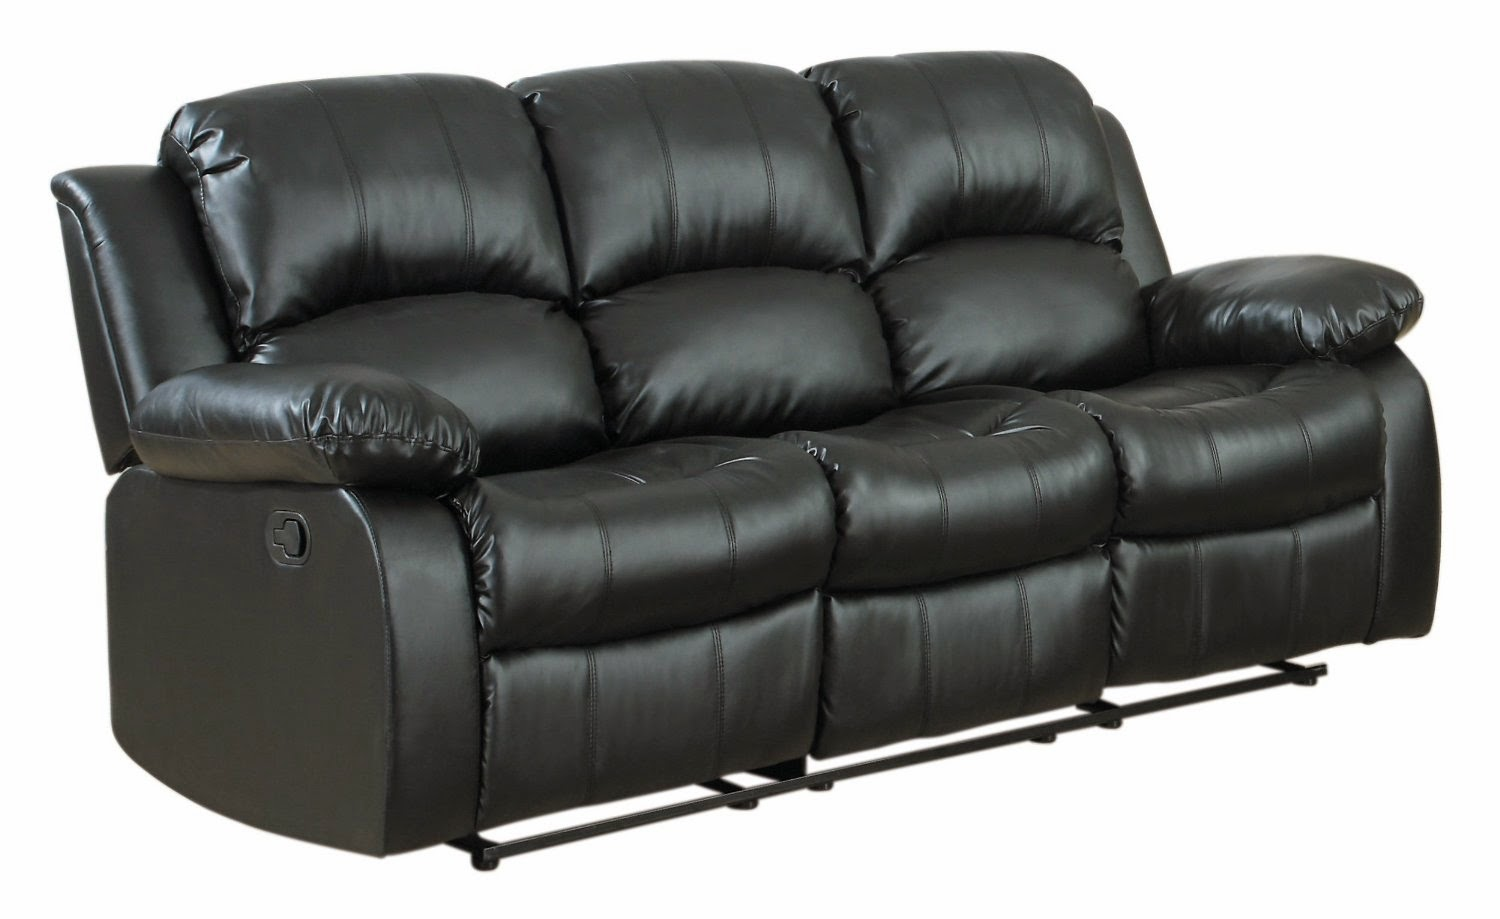 costco leather chairs chair design iron reclining sofas for sale berkline sofa